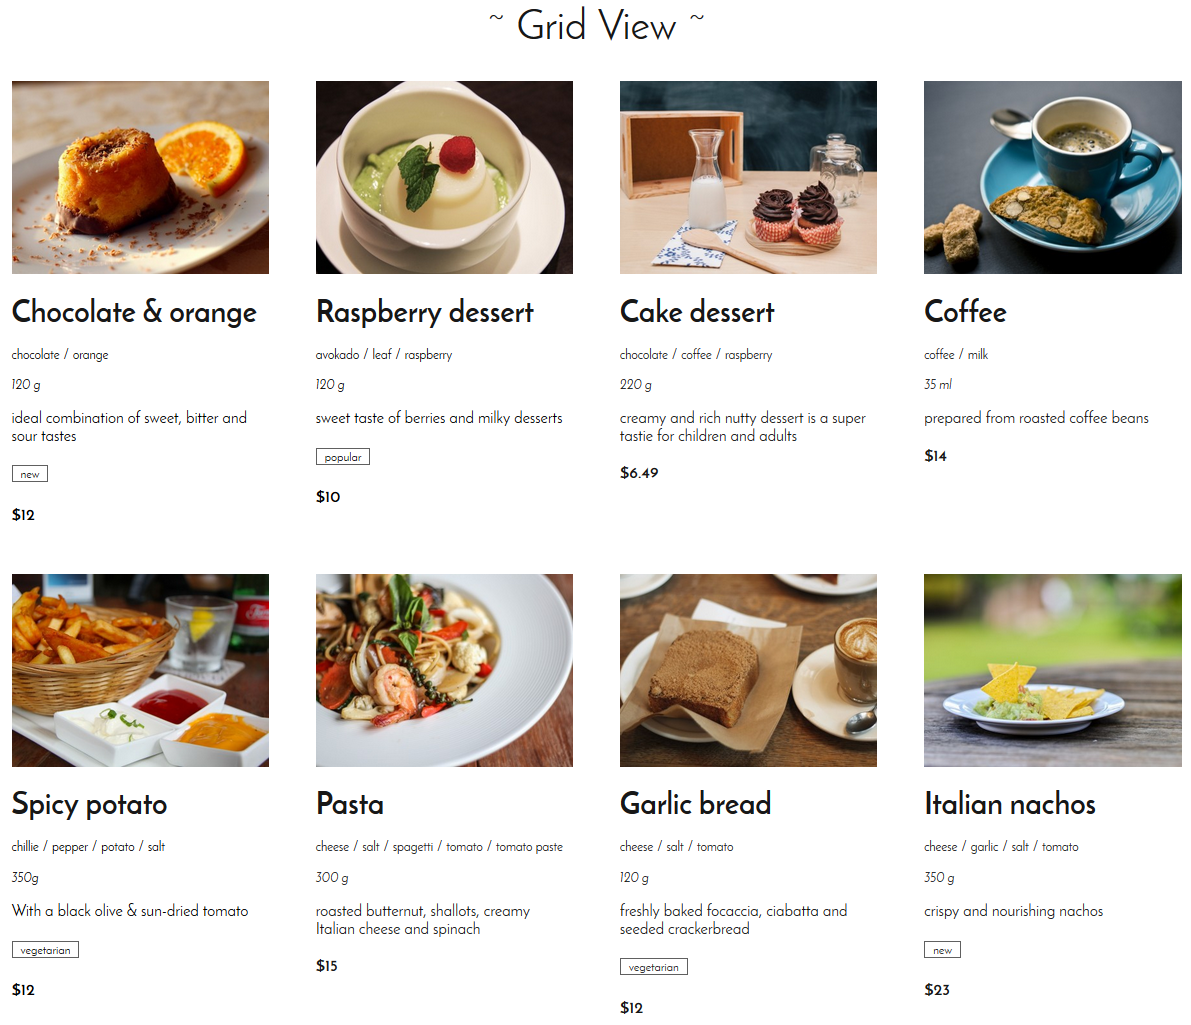 Grid view of menu items